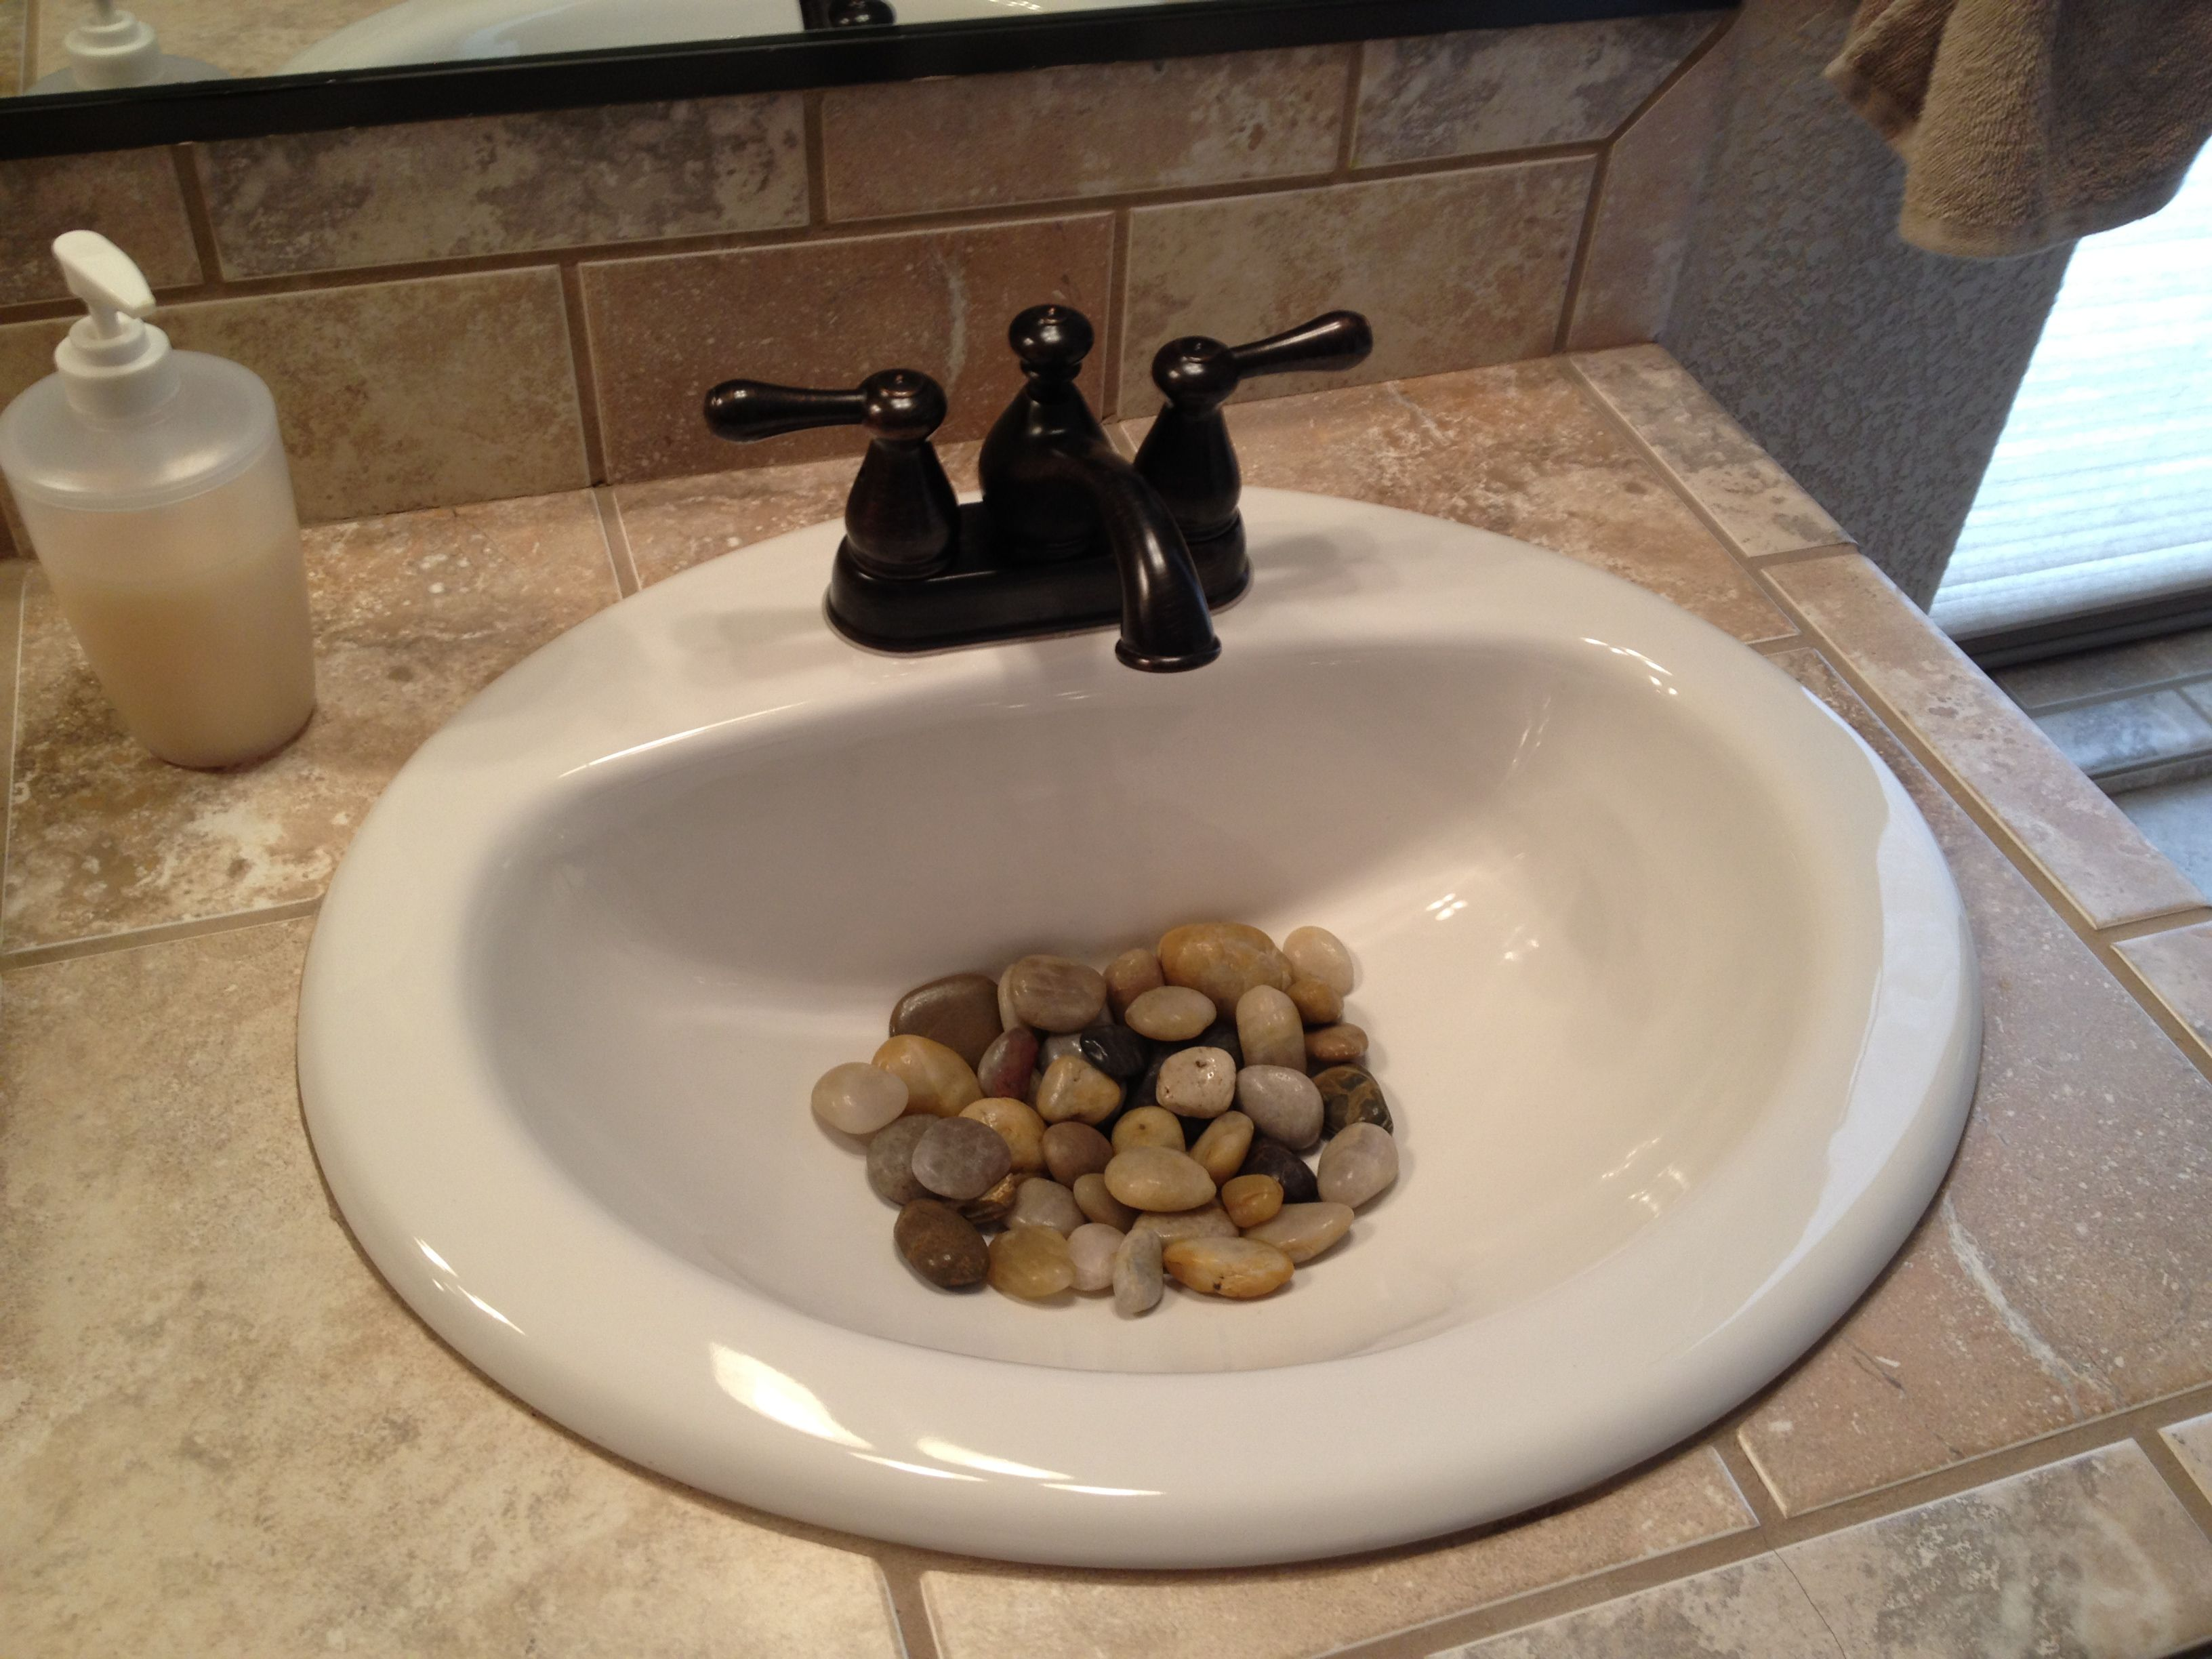 River Rocks In The Bathroom Sink A Little Feng Shui But Neat Way To Decorate Too